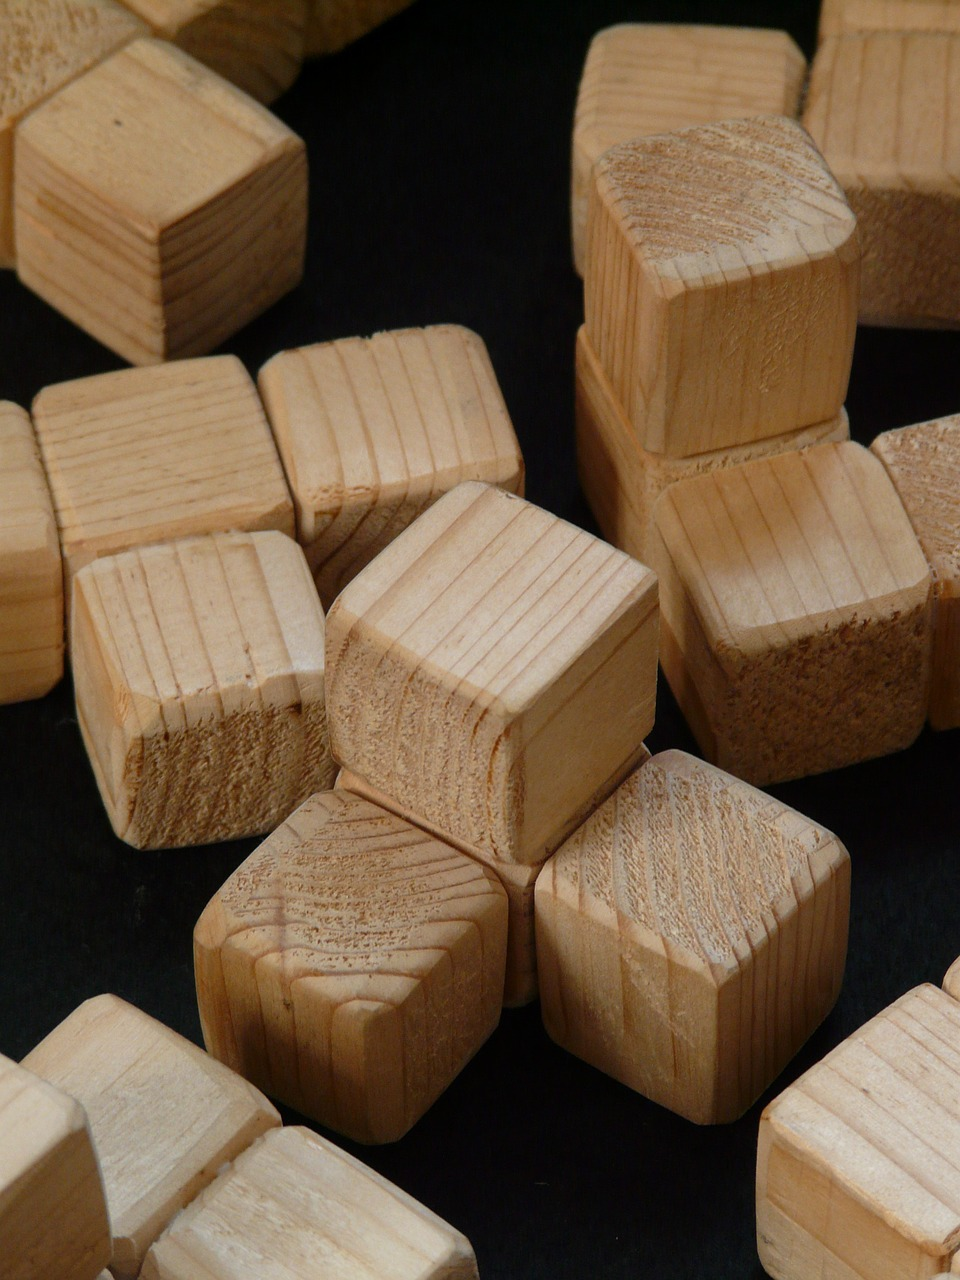 cube,wood,wooden toys,puzzle,share,build,play,free pictures, free photos, free images, royalty free, free illustrations, public domain